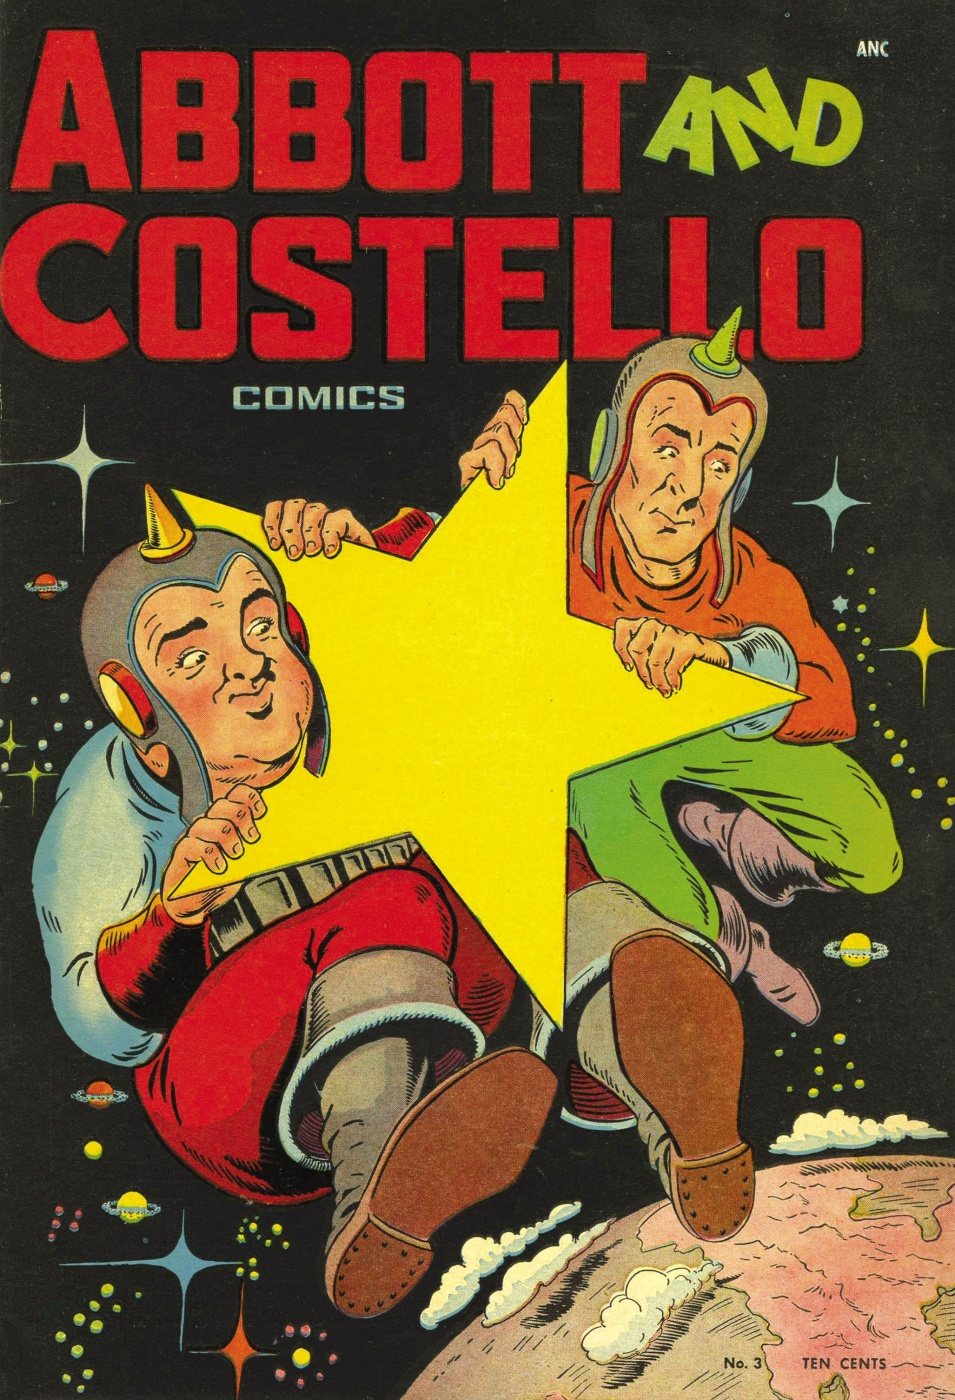 Abbott-Costello-Comics (c) (1)